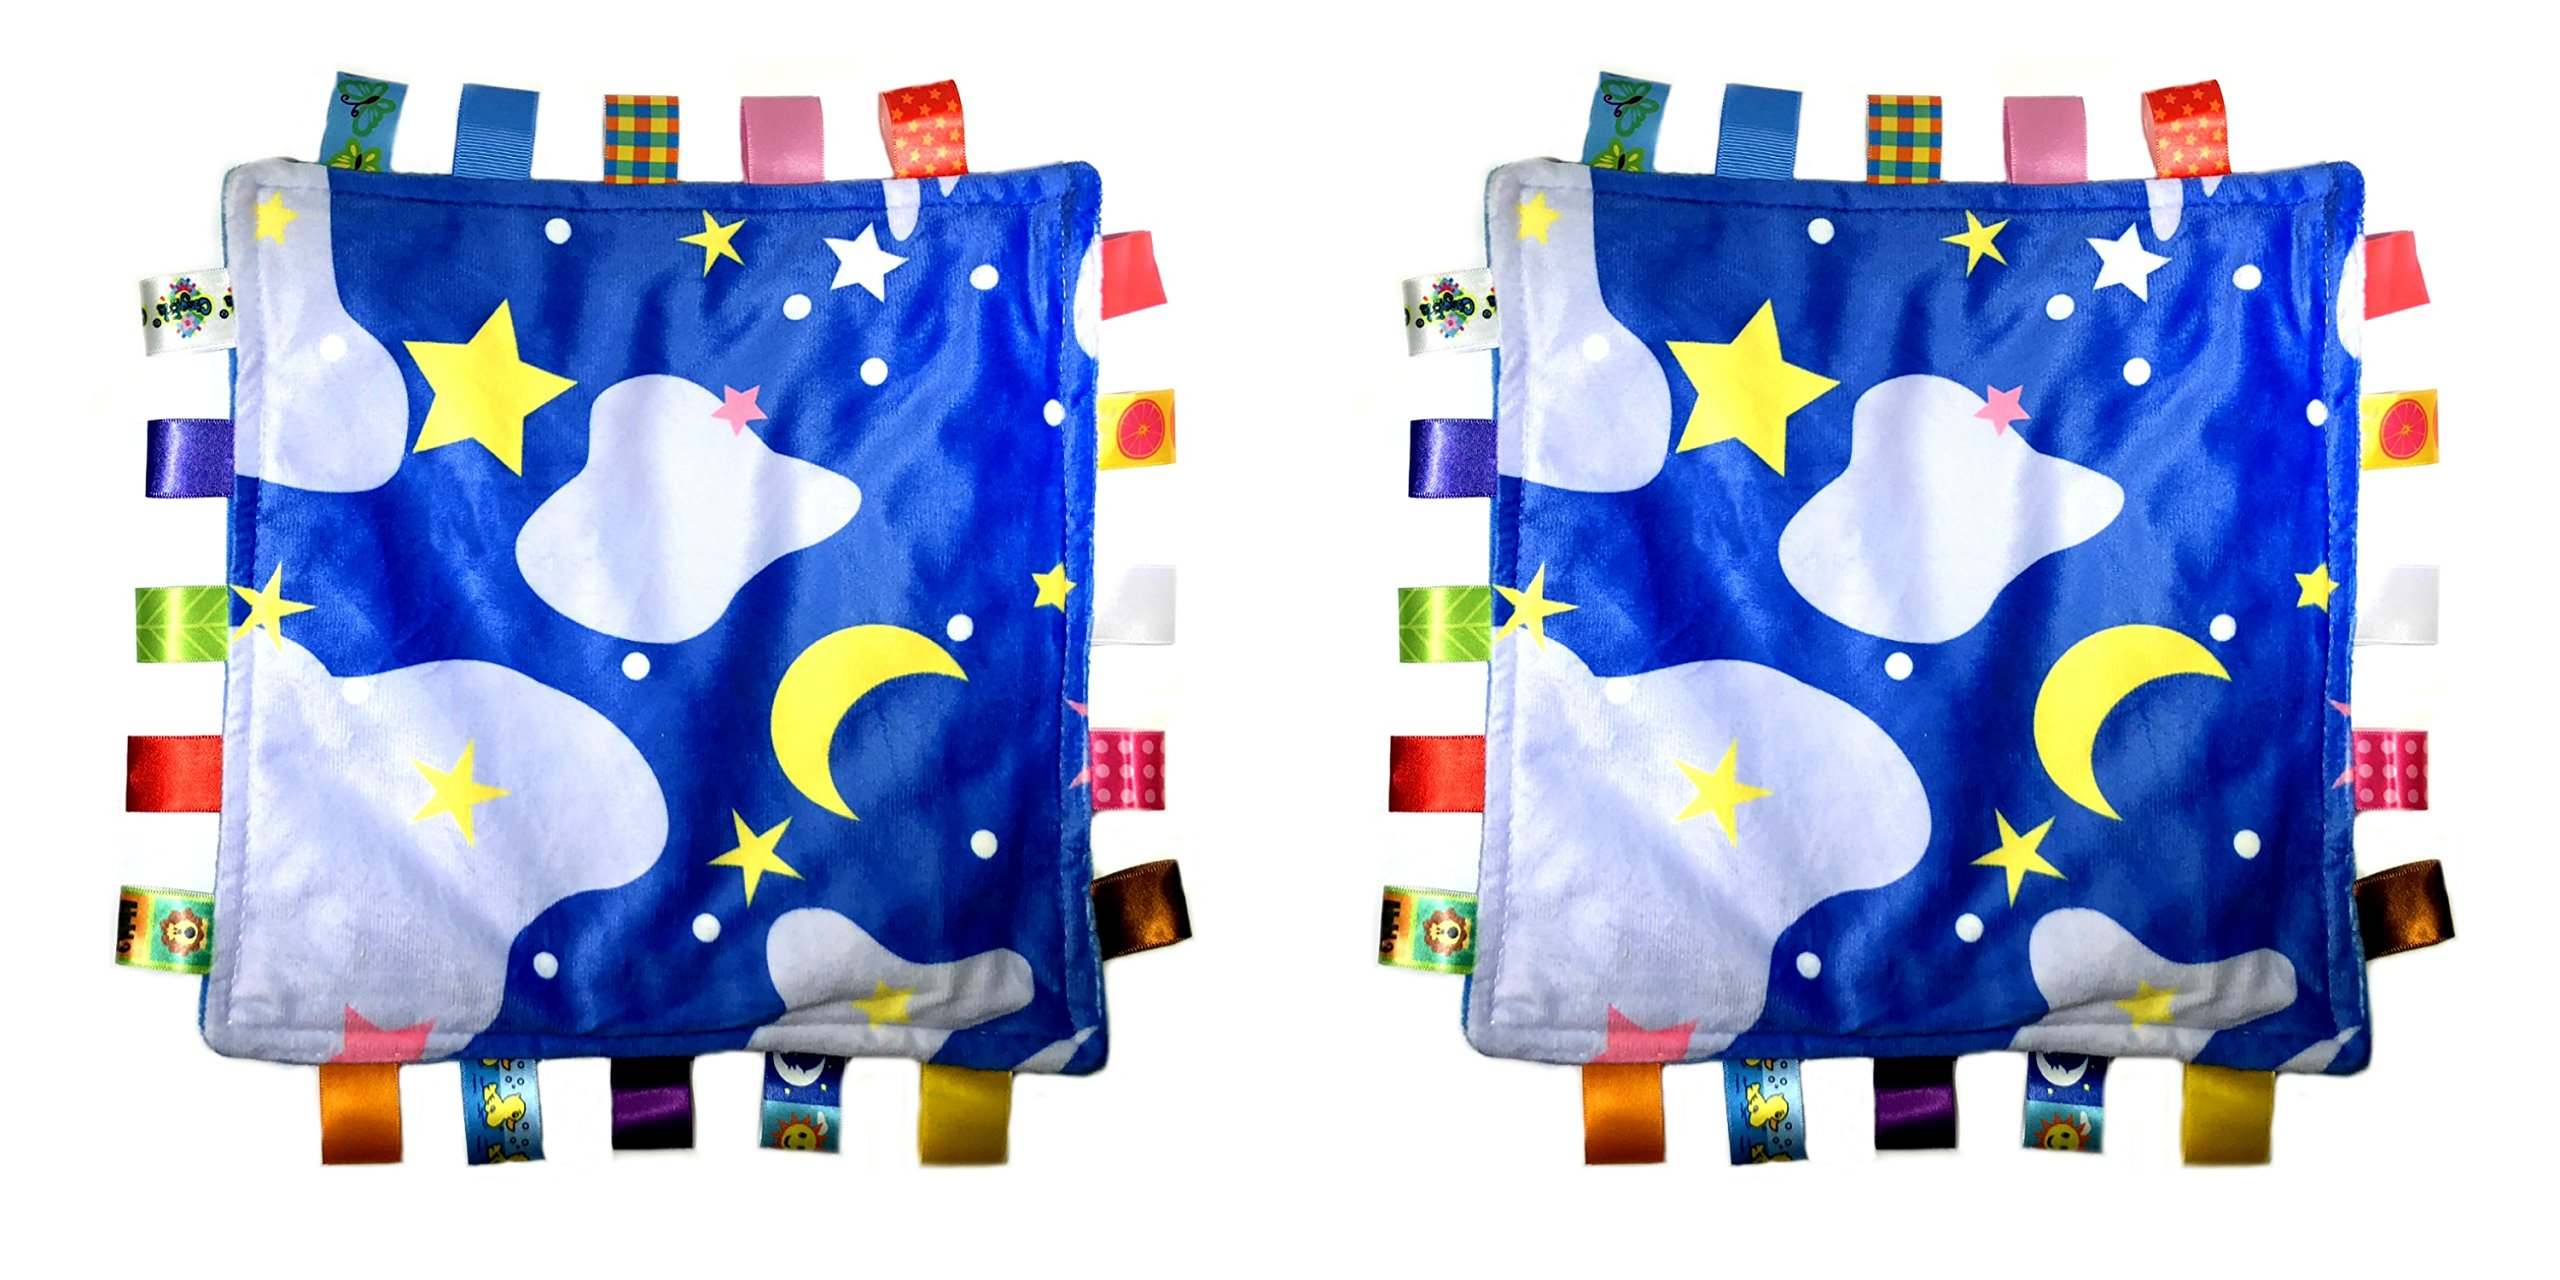 Little Tag Style Colors Security Comforting Teether Blanket - Night Starry Sky Theme 2-Pack Gift Set